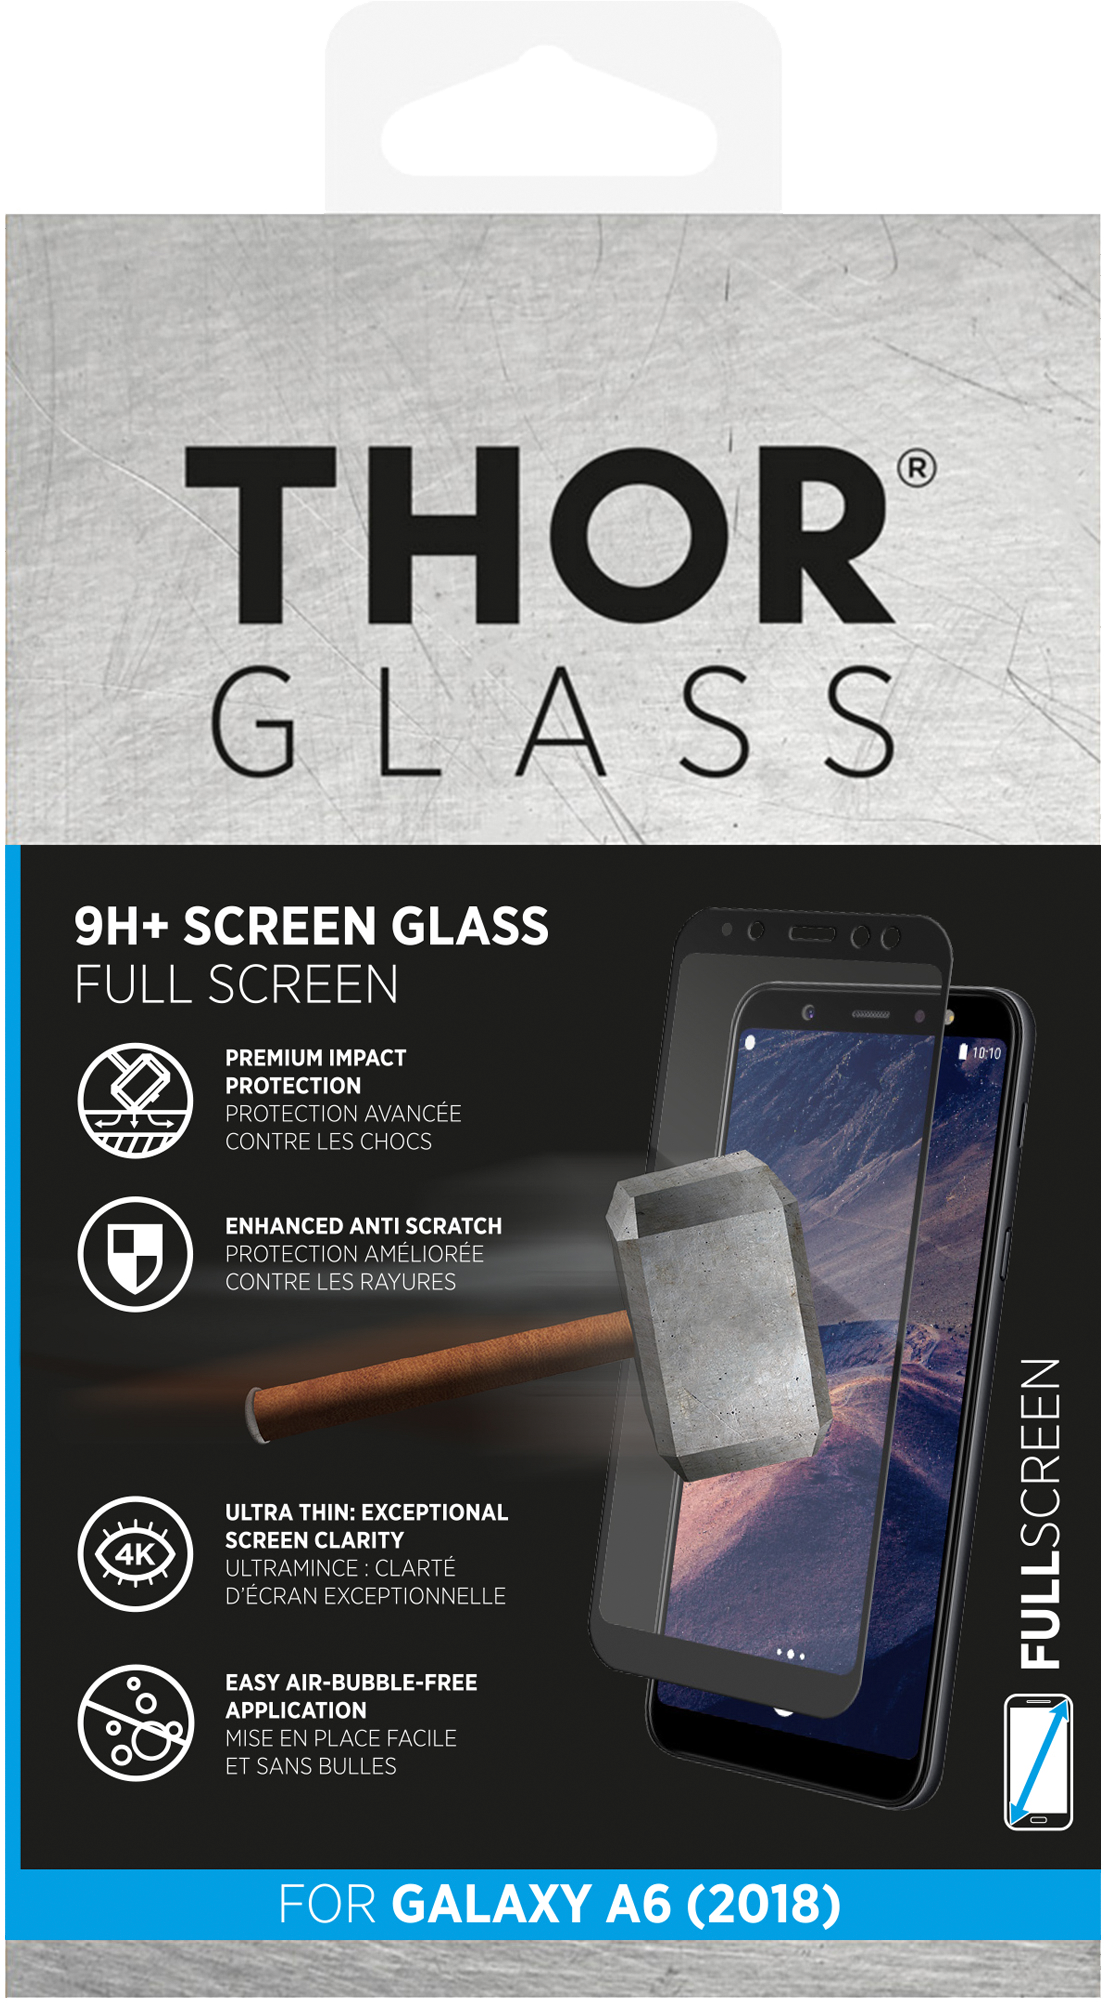 Thor Curved Glass Screen Protector Samsung Galaxy A6 (2018) thumbnail